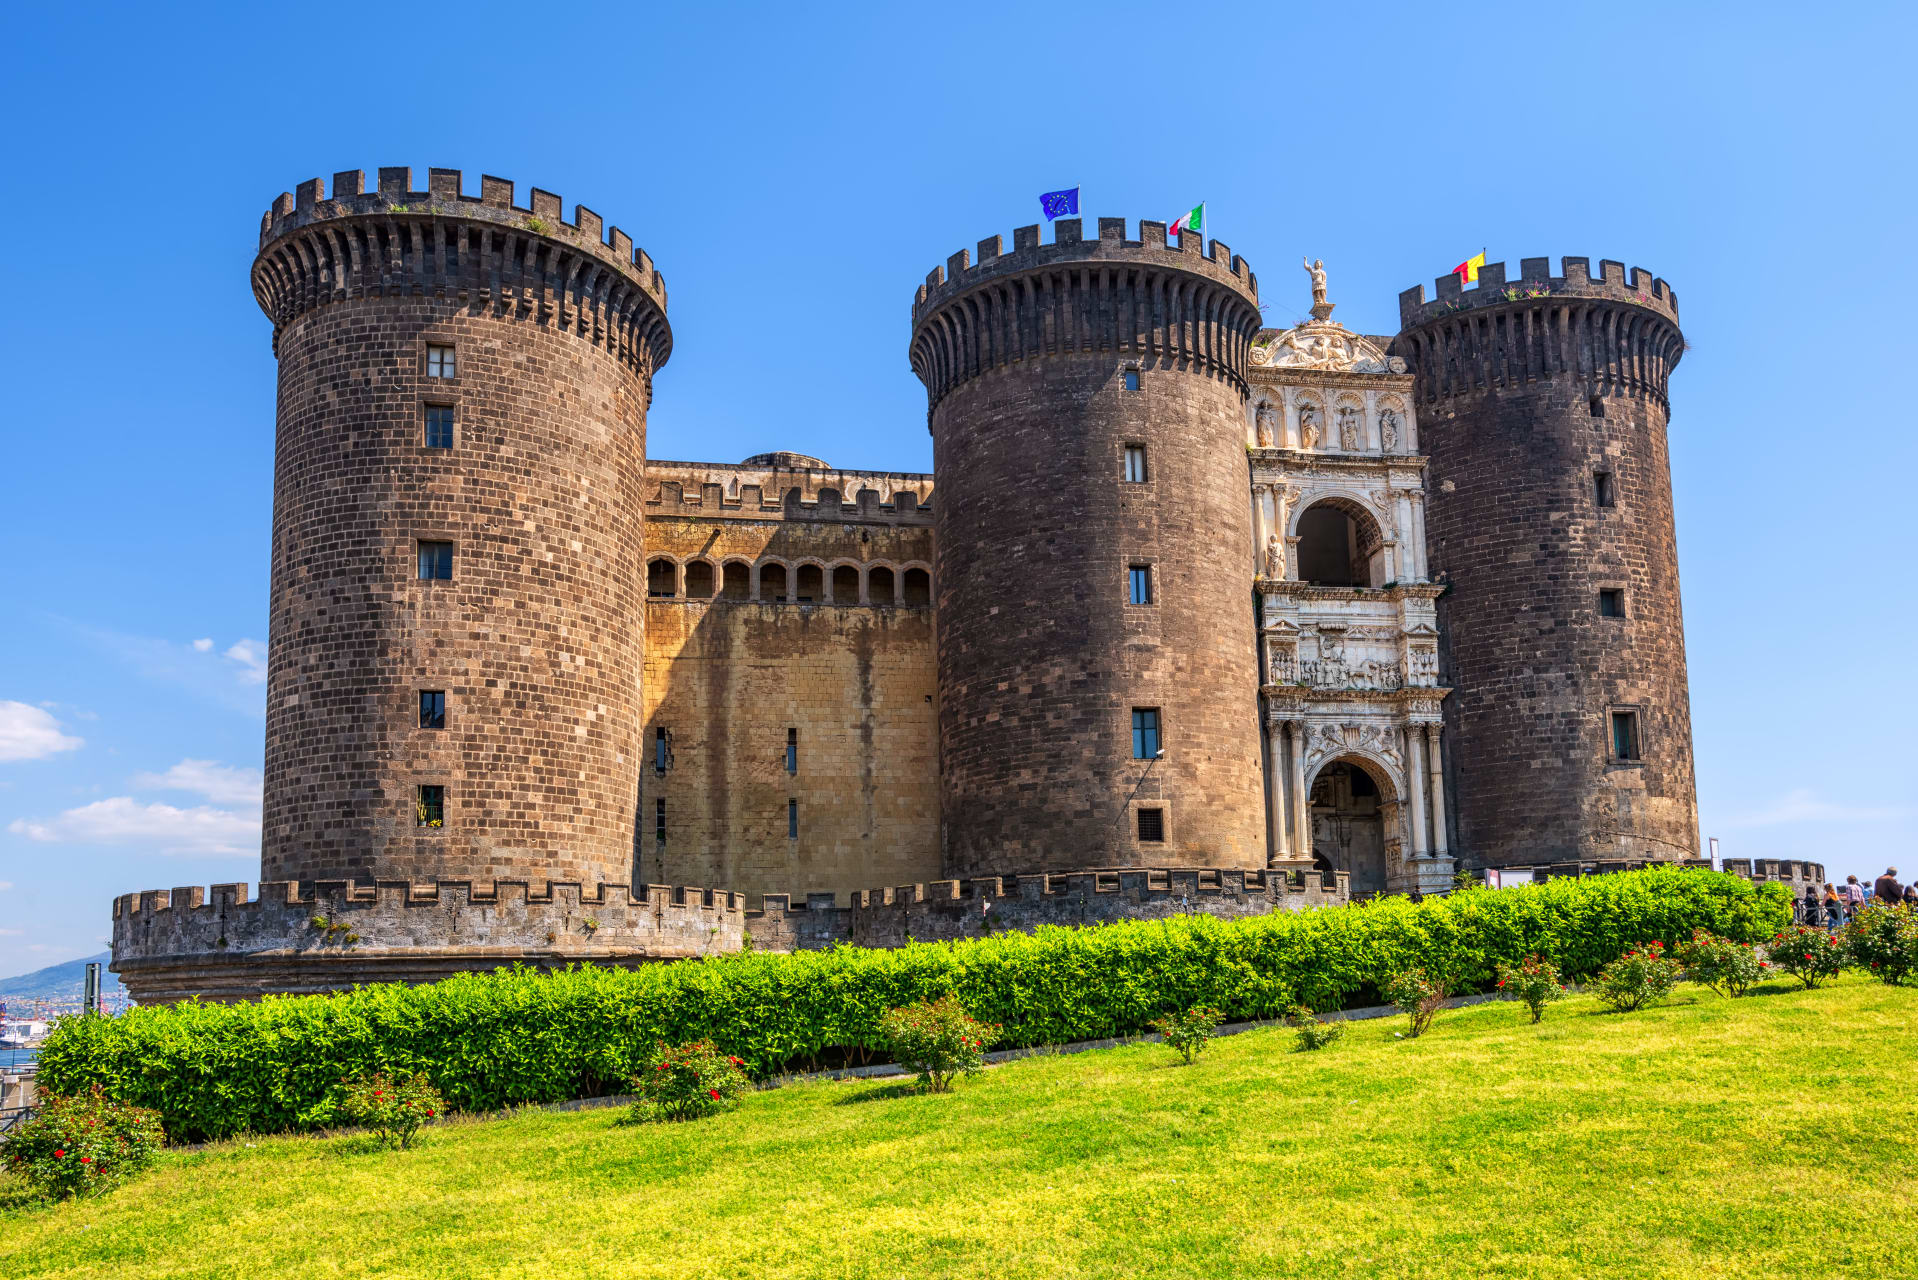 Naples - The Monumental Naples: Seaside and Royal Area